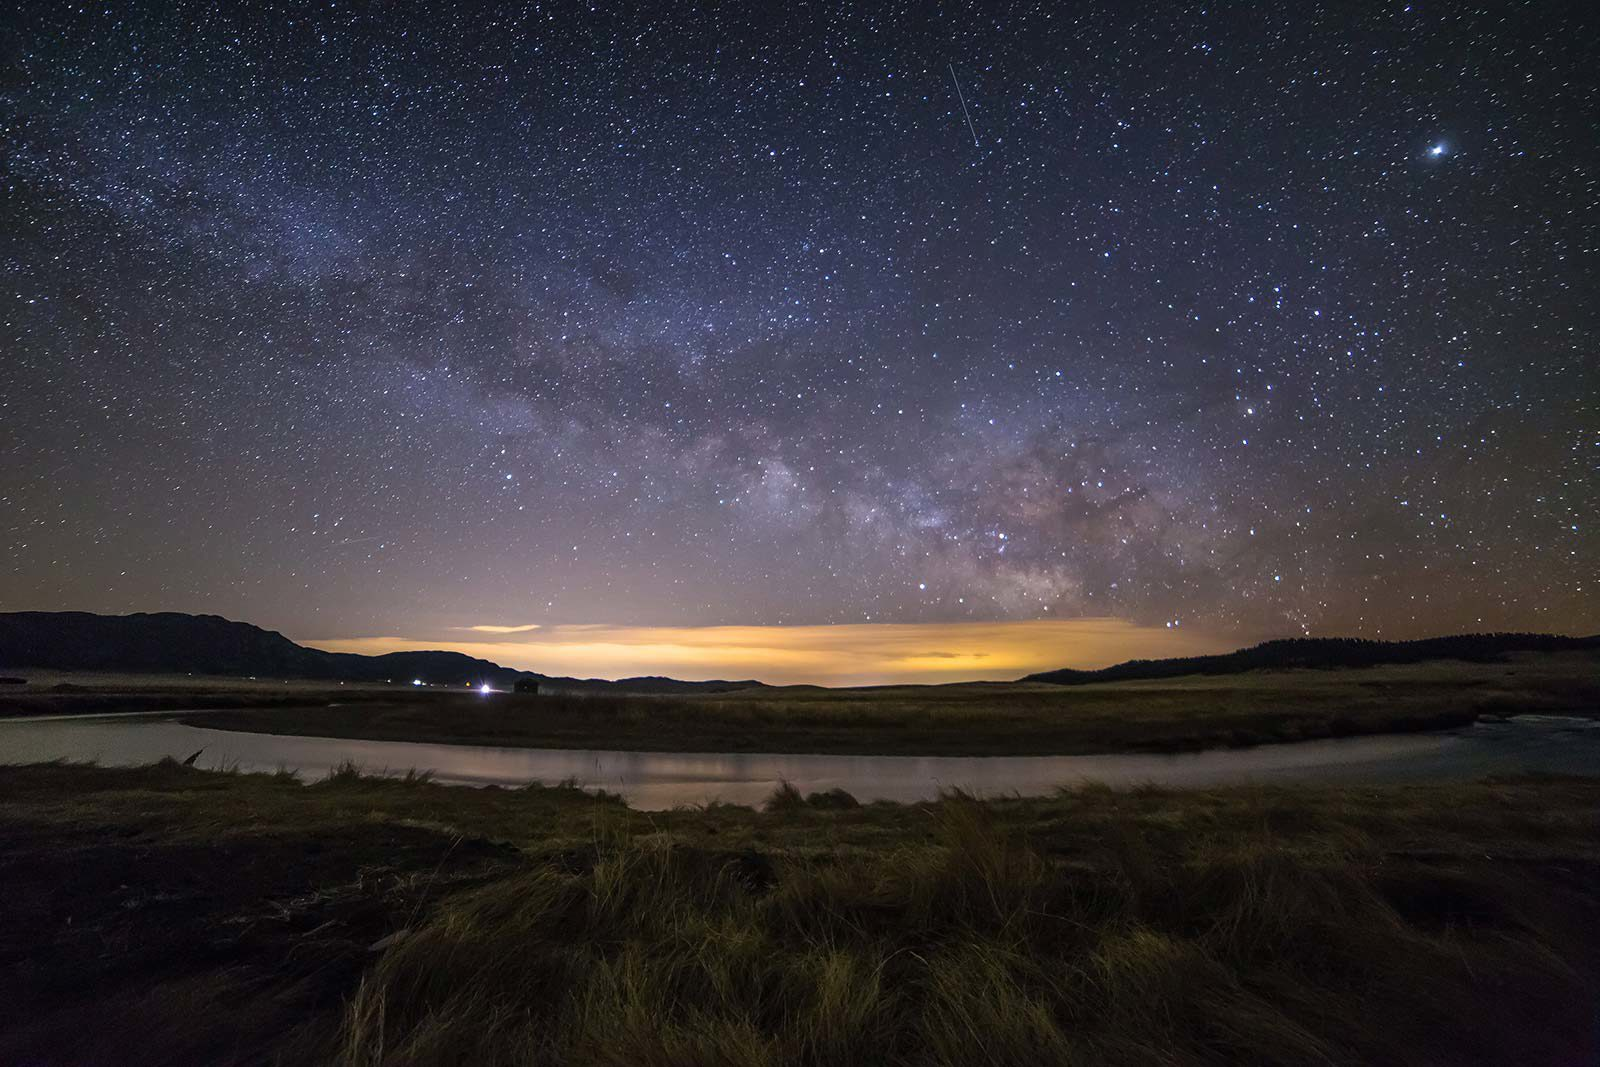 Field and lake under starry sky with sunrise in distance.